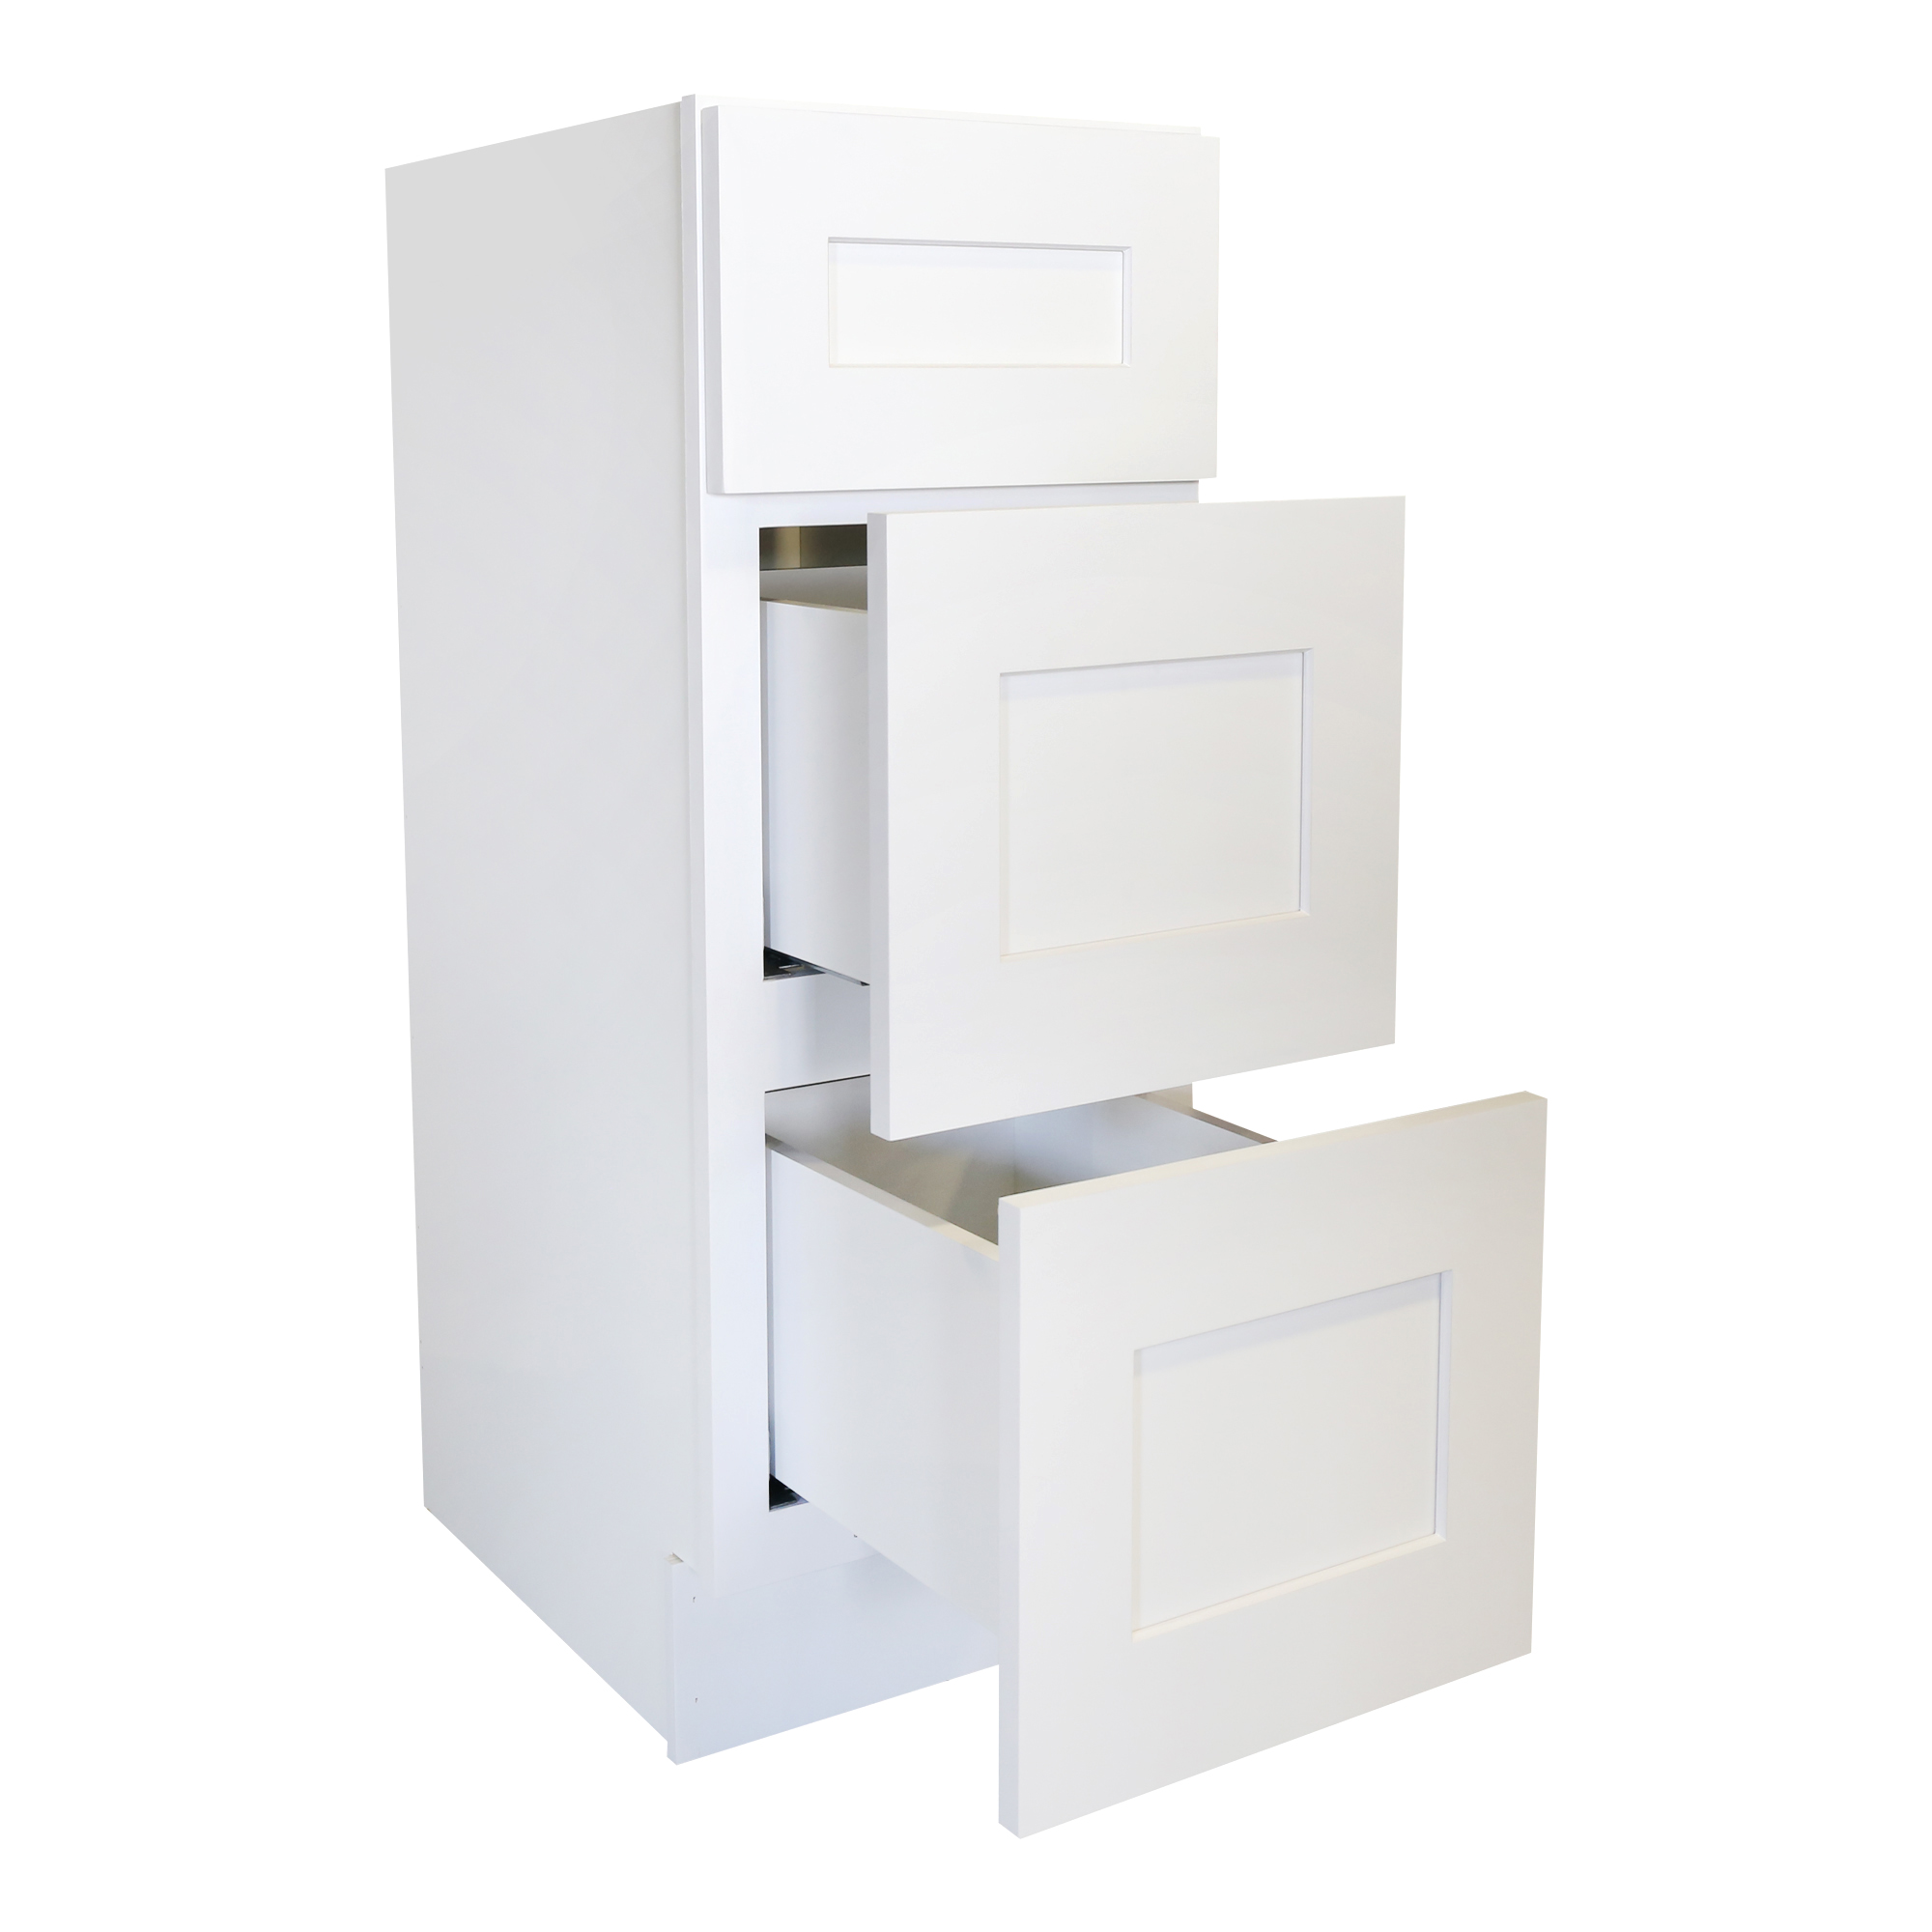 Ready to Assemble 21Wx34.5Hx24D in. Shaker Base Drawer with 1 Standard Drawer with 2 Deep Drawers in White